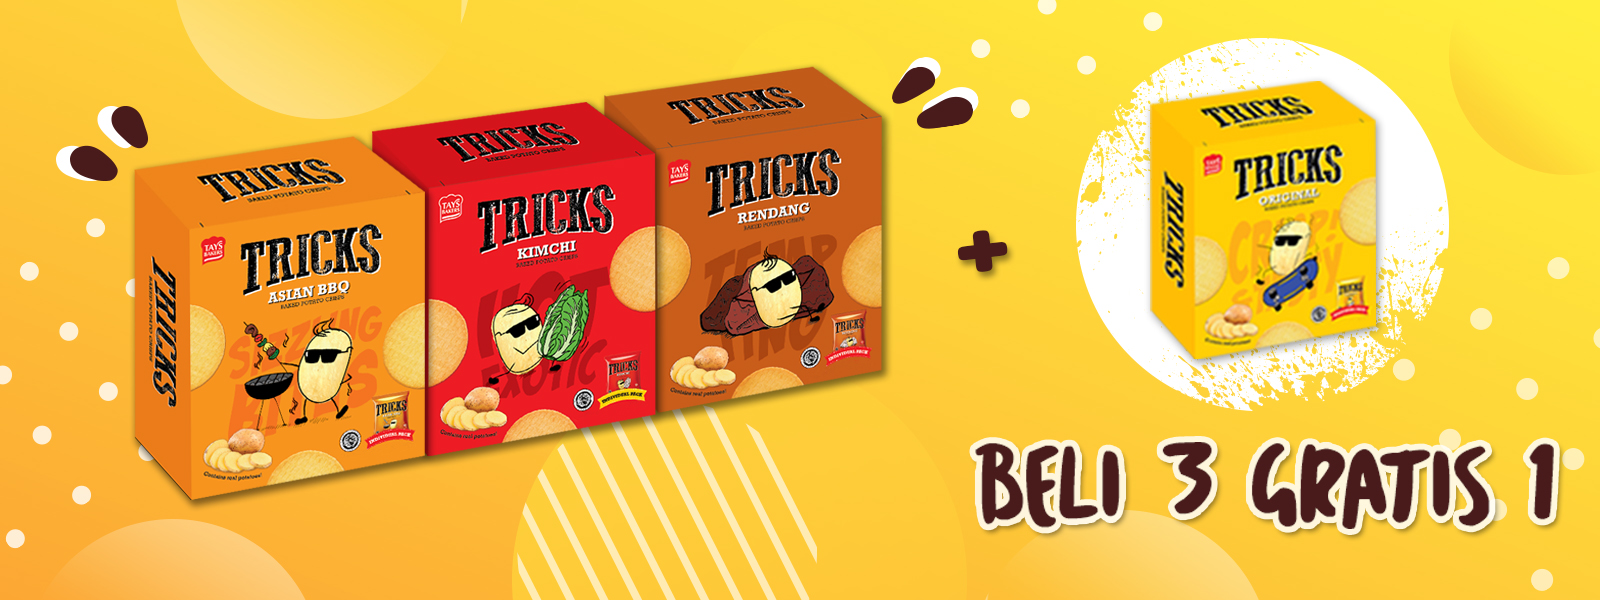 Tricks promo buy 3 get 1 free - Snack potato chips - Tays